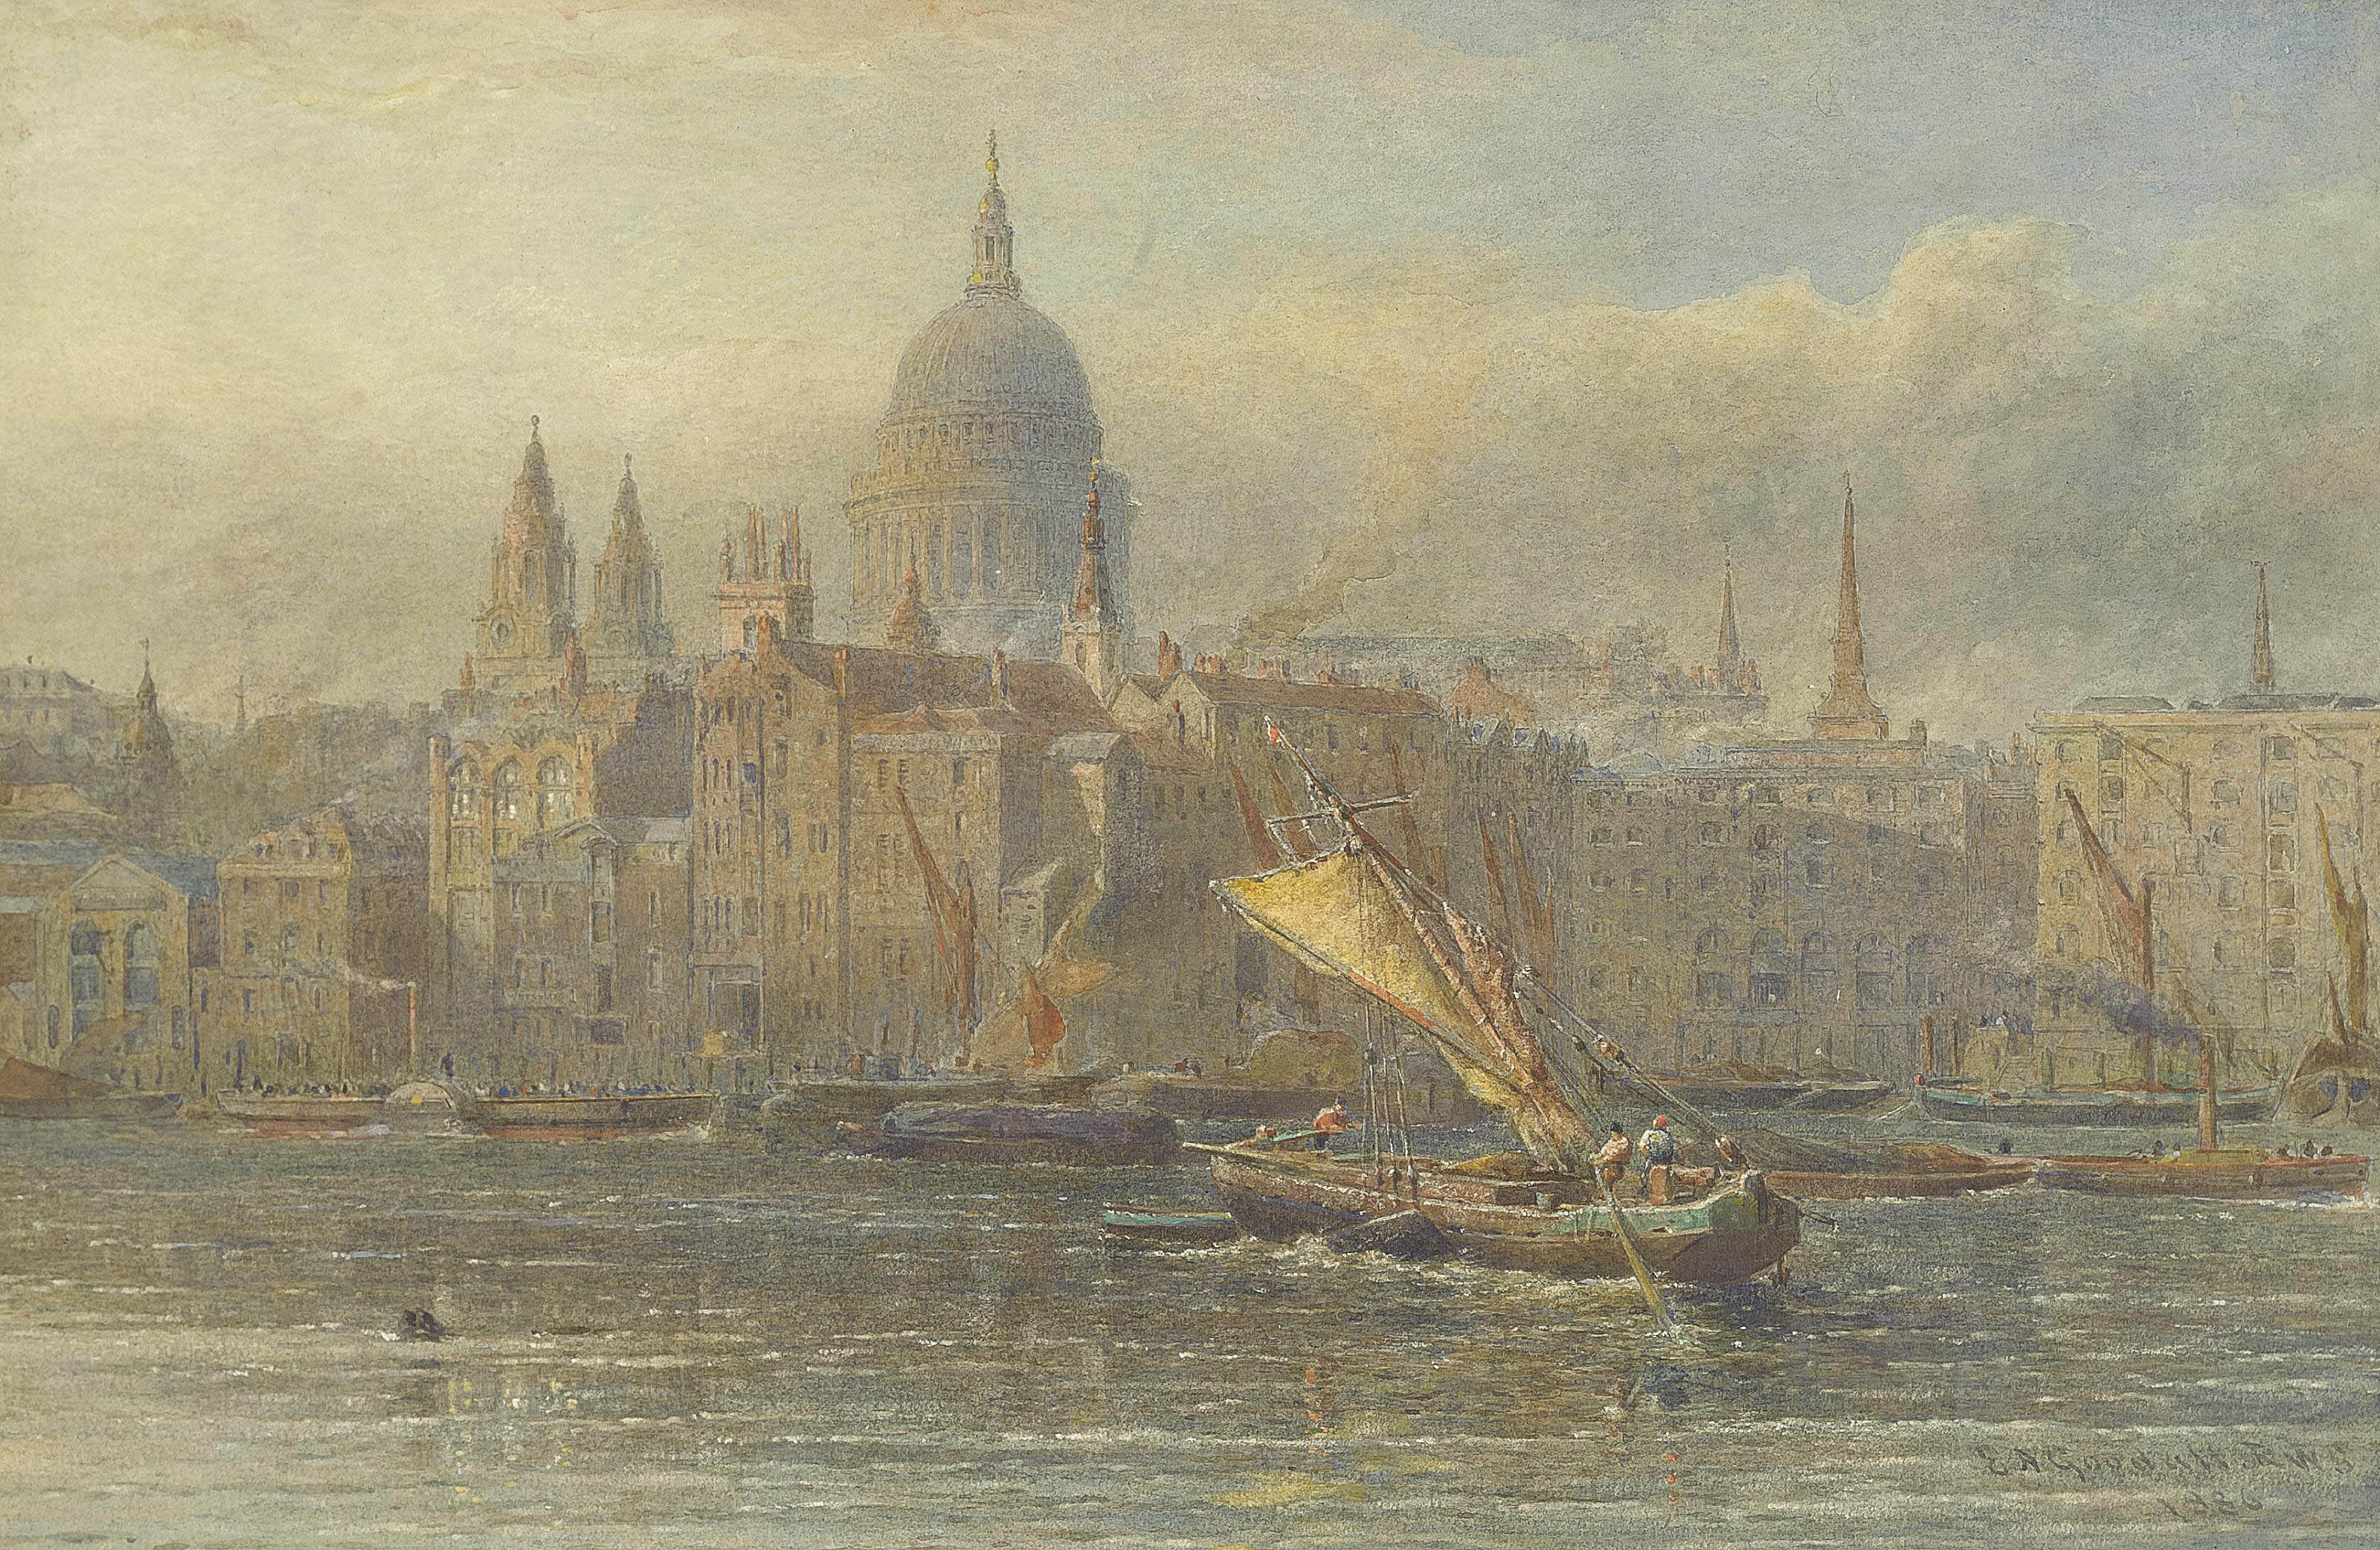 A paddle steamer and barges on the Thames before St. Paul's Cathedral